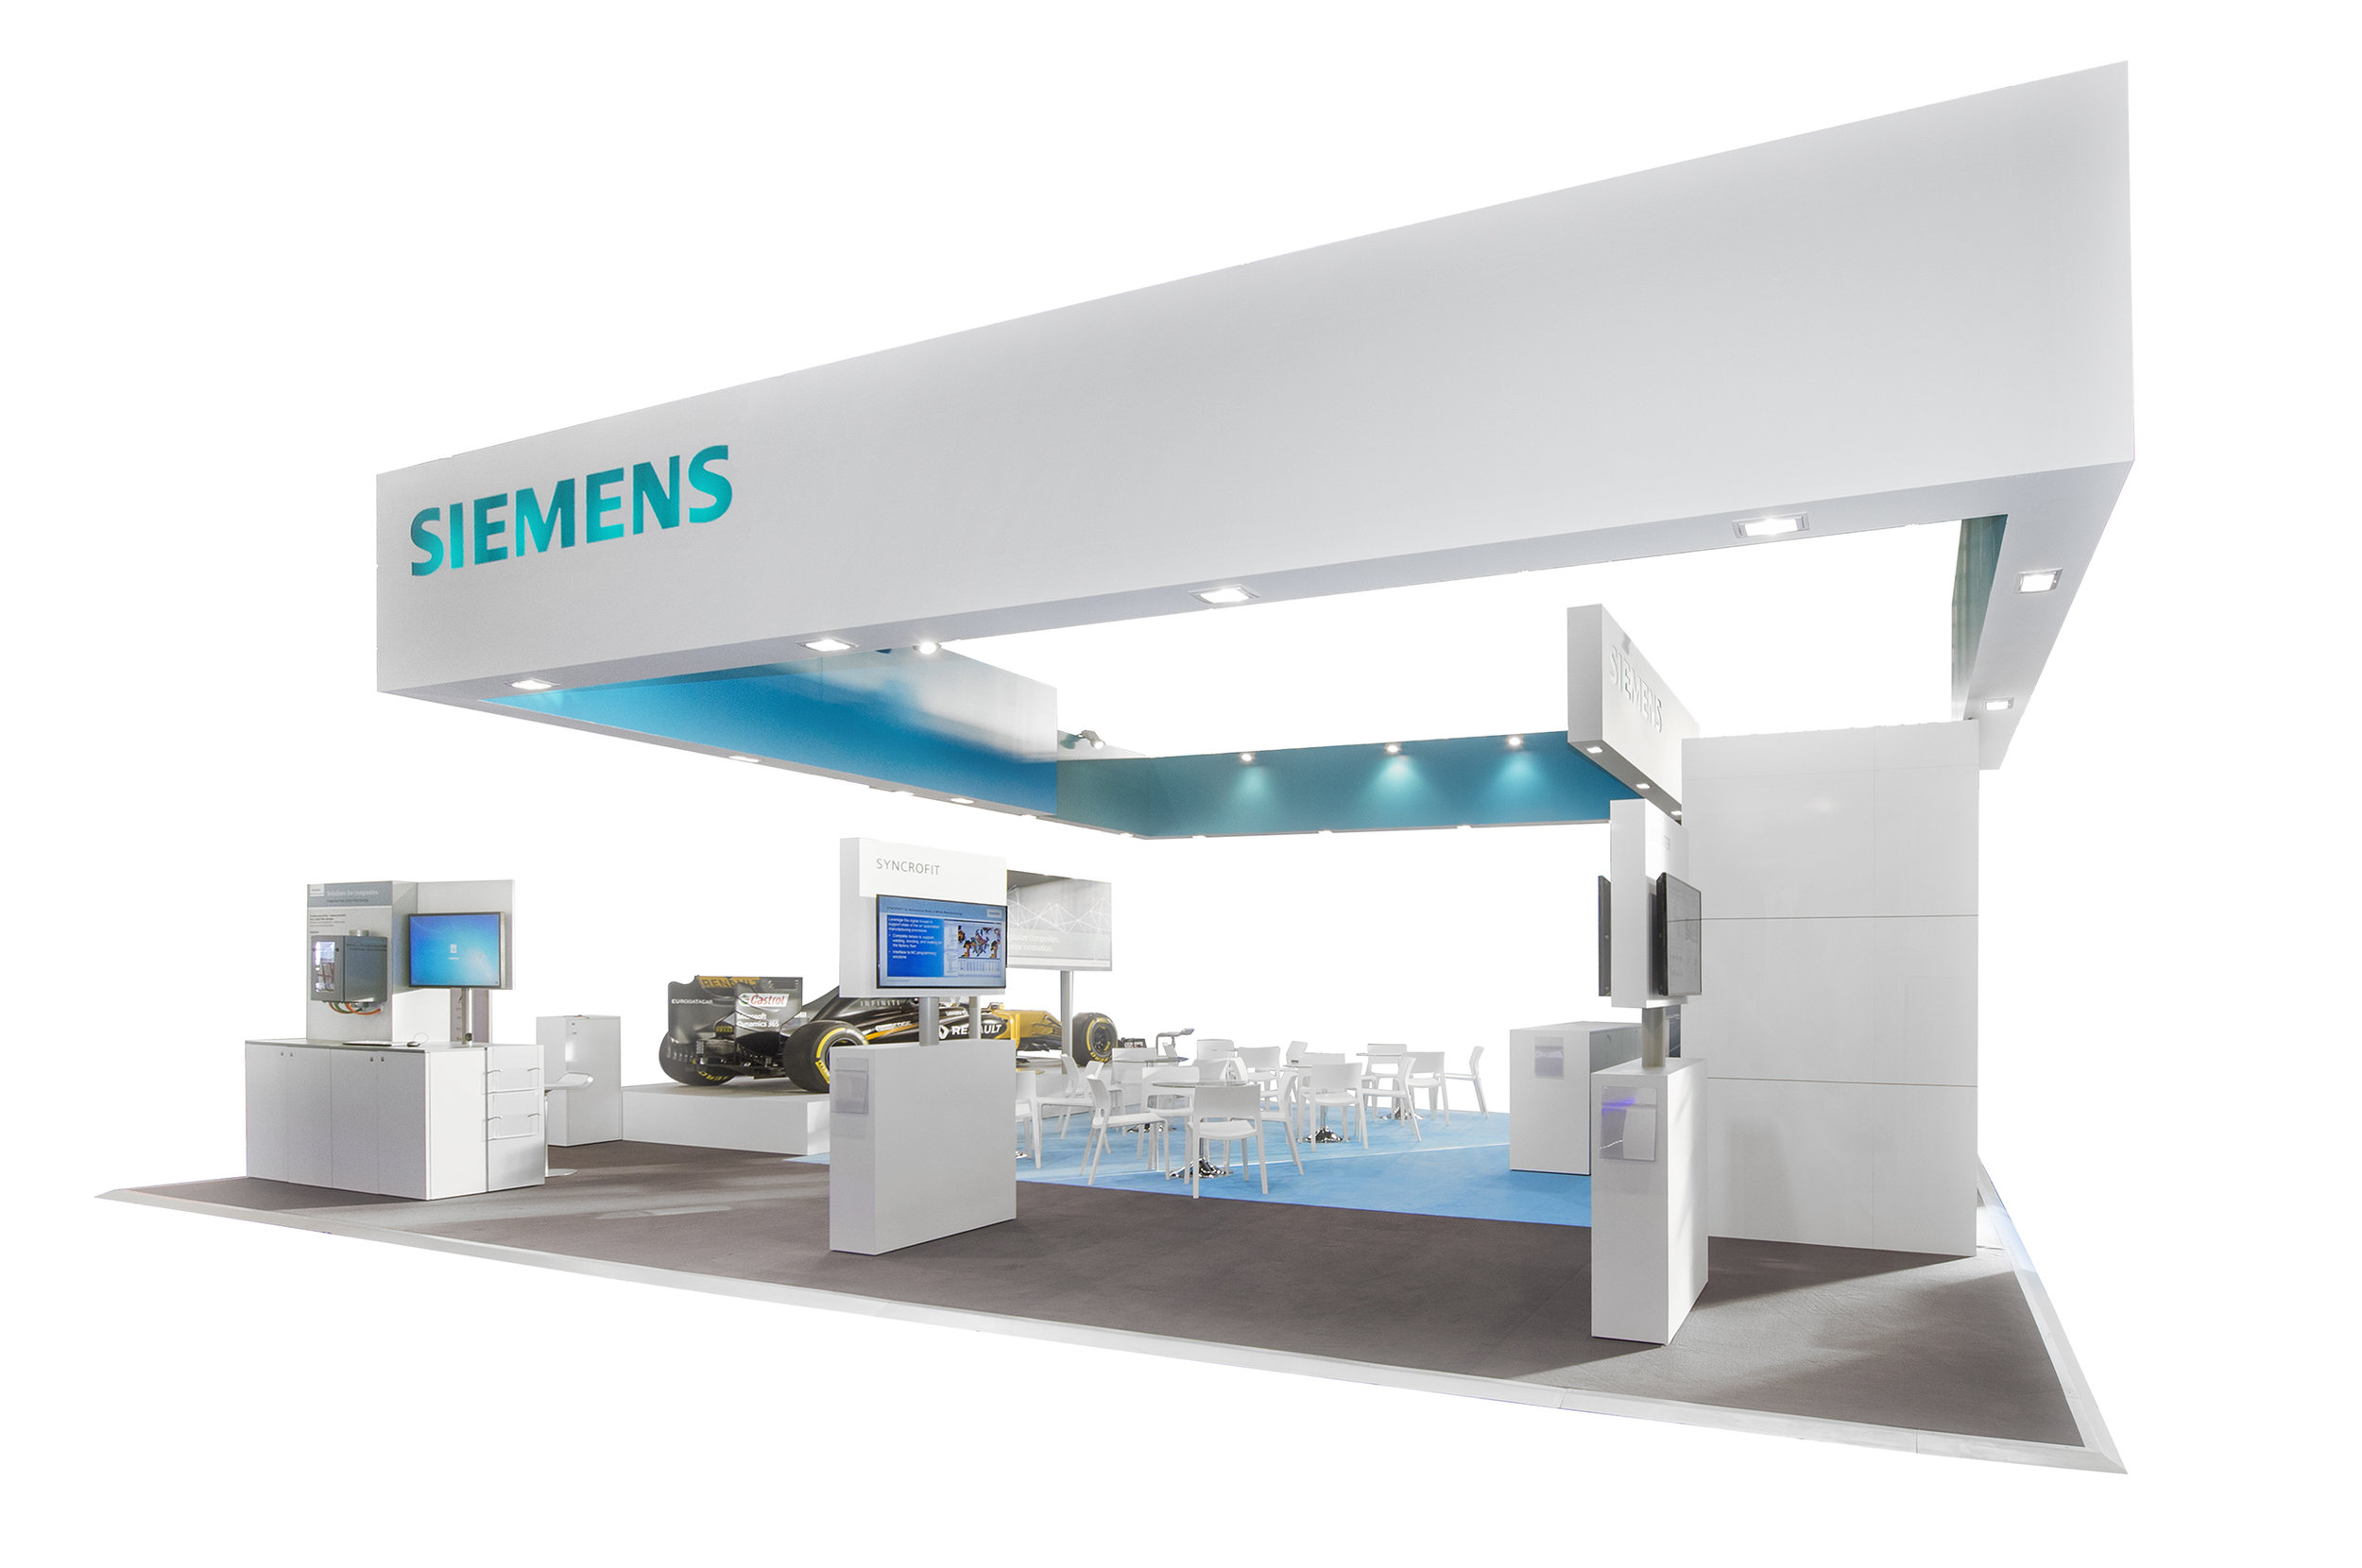 SIEMENS PLM SOFTWARE JEC WORLD 2017 3 2500.jpg